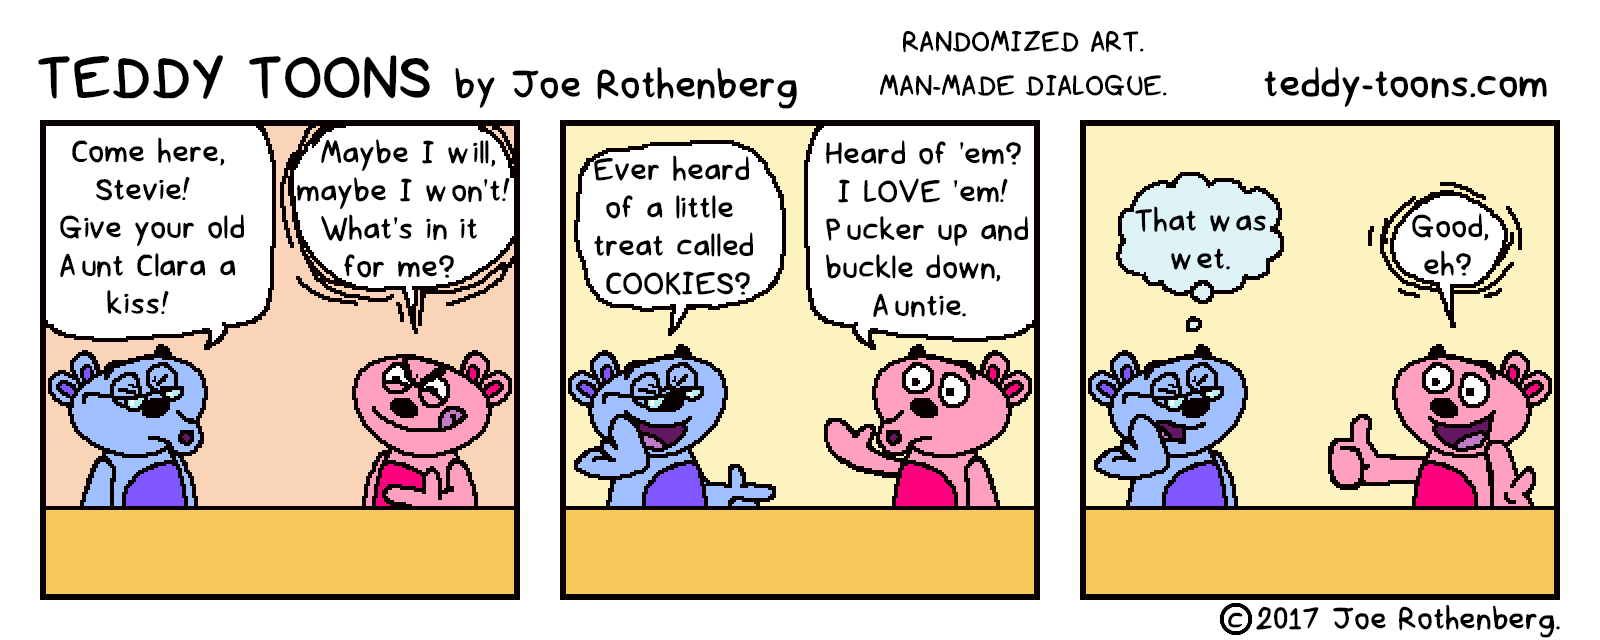 02-09-17.png